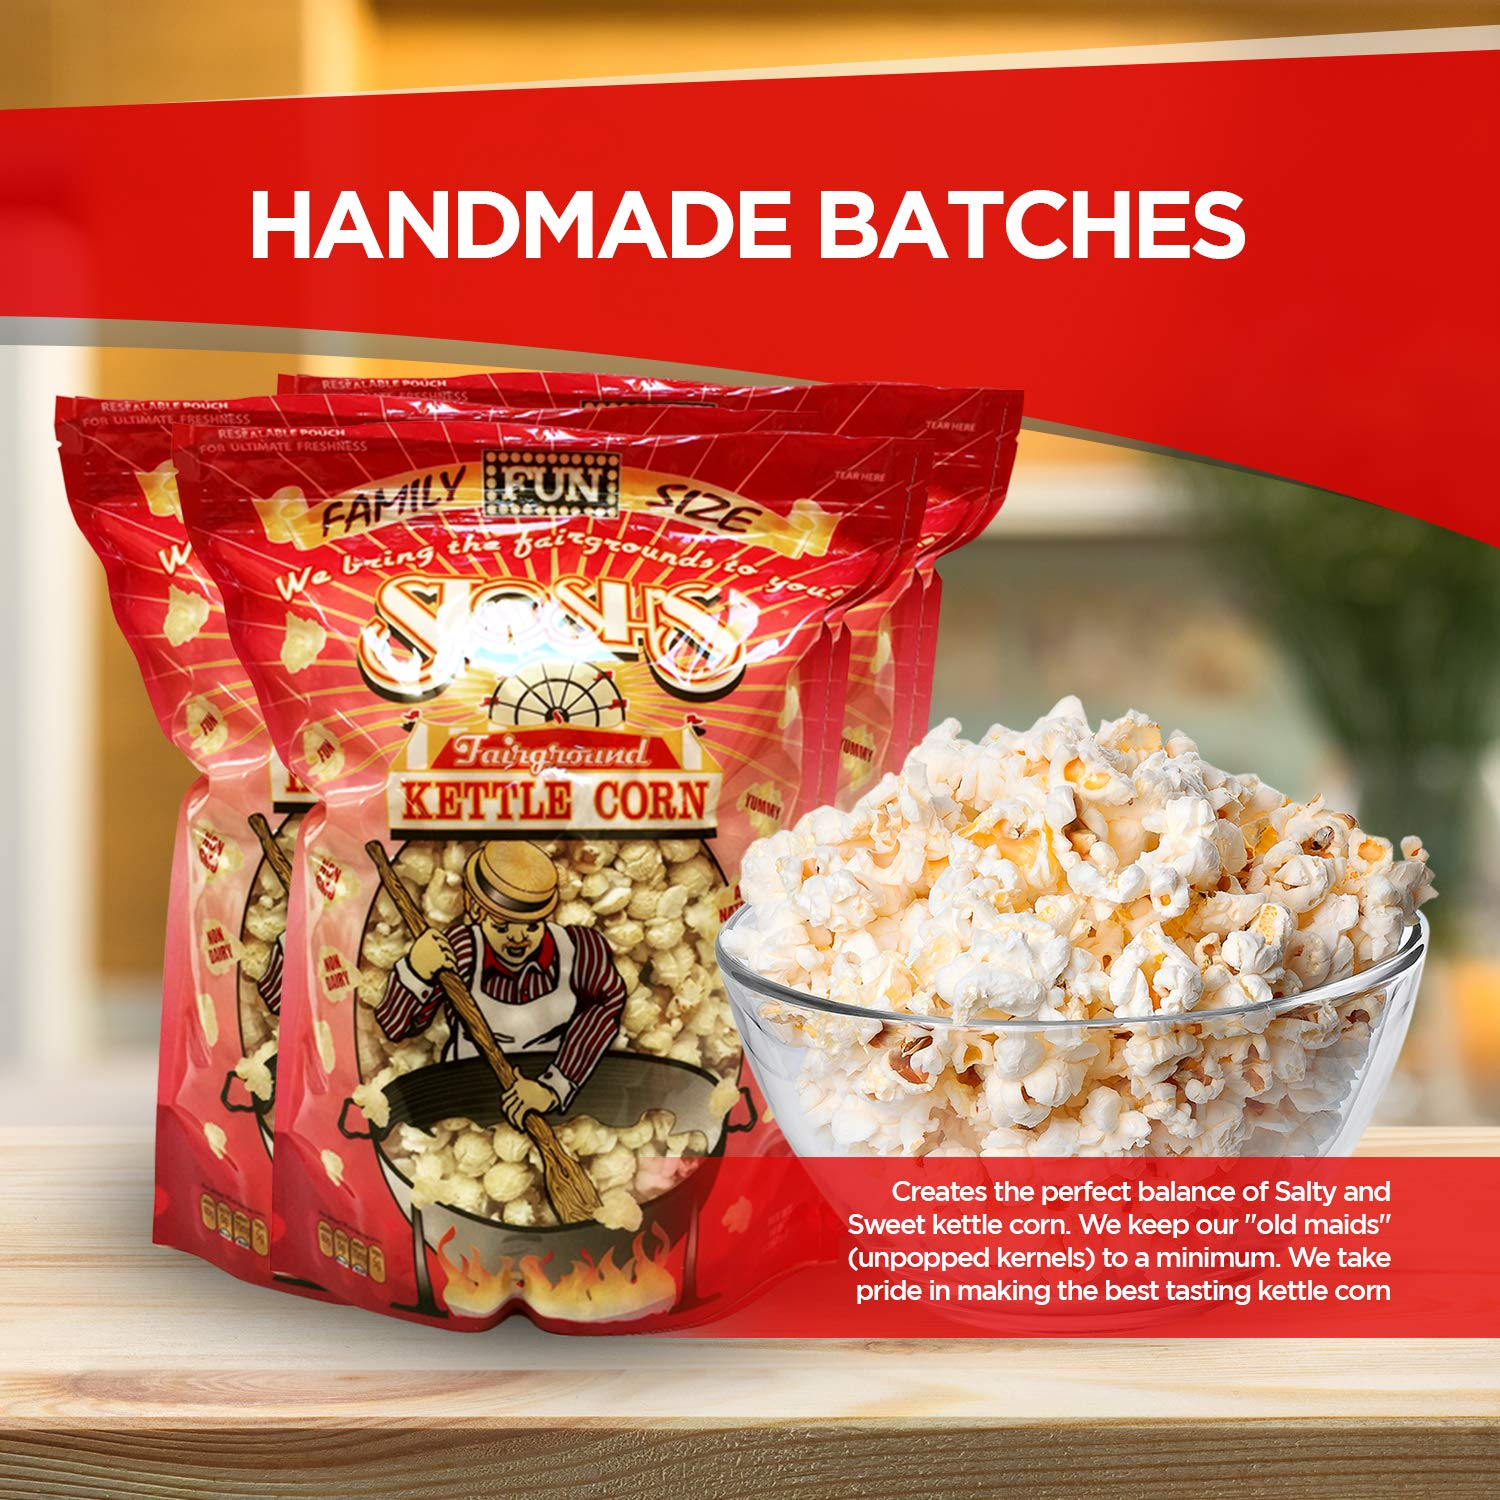 All Natural Kettle Corn - Gourmet Handmade Sweet & Salty Kettle Corn  Popcorn with Resealable Bag (14oz